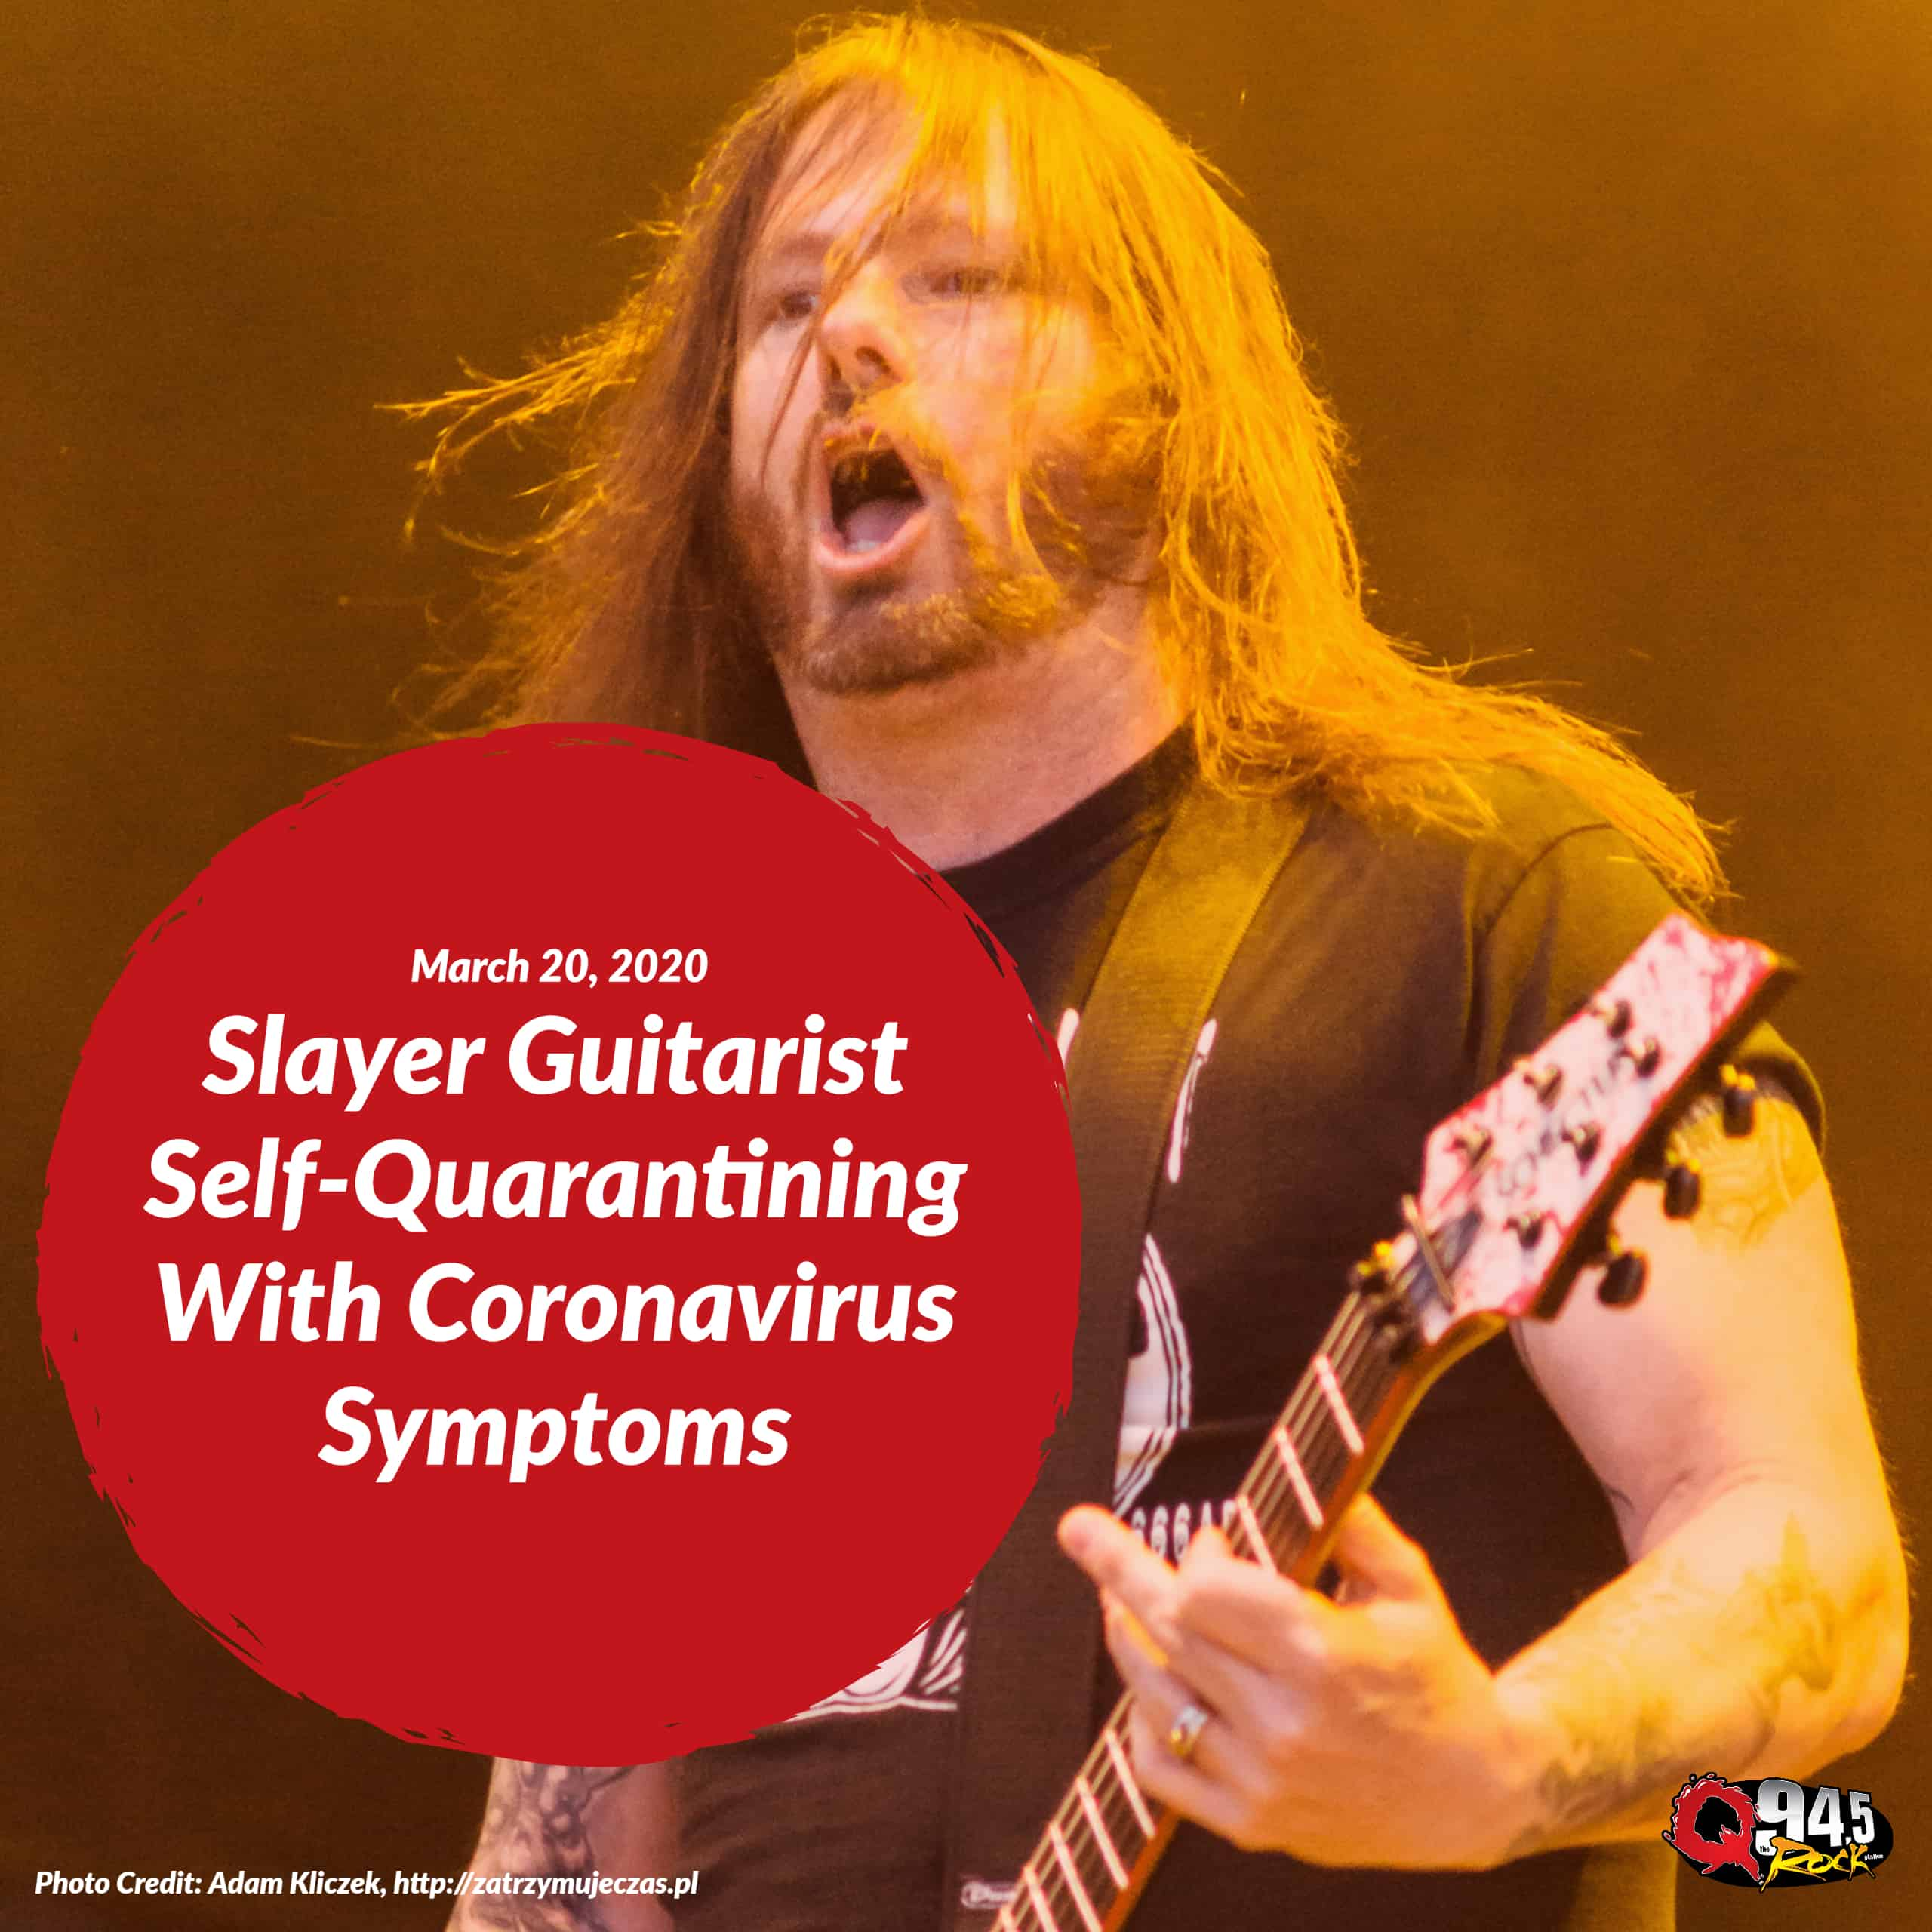 Slayer Guitarist Self-Quarantining With Coronavirus Symptoms